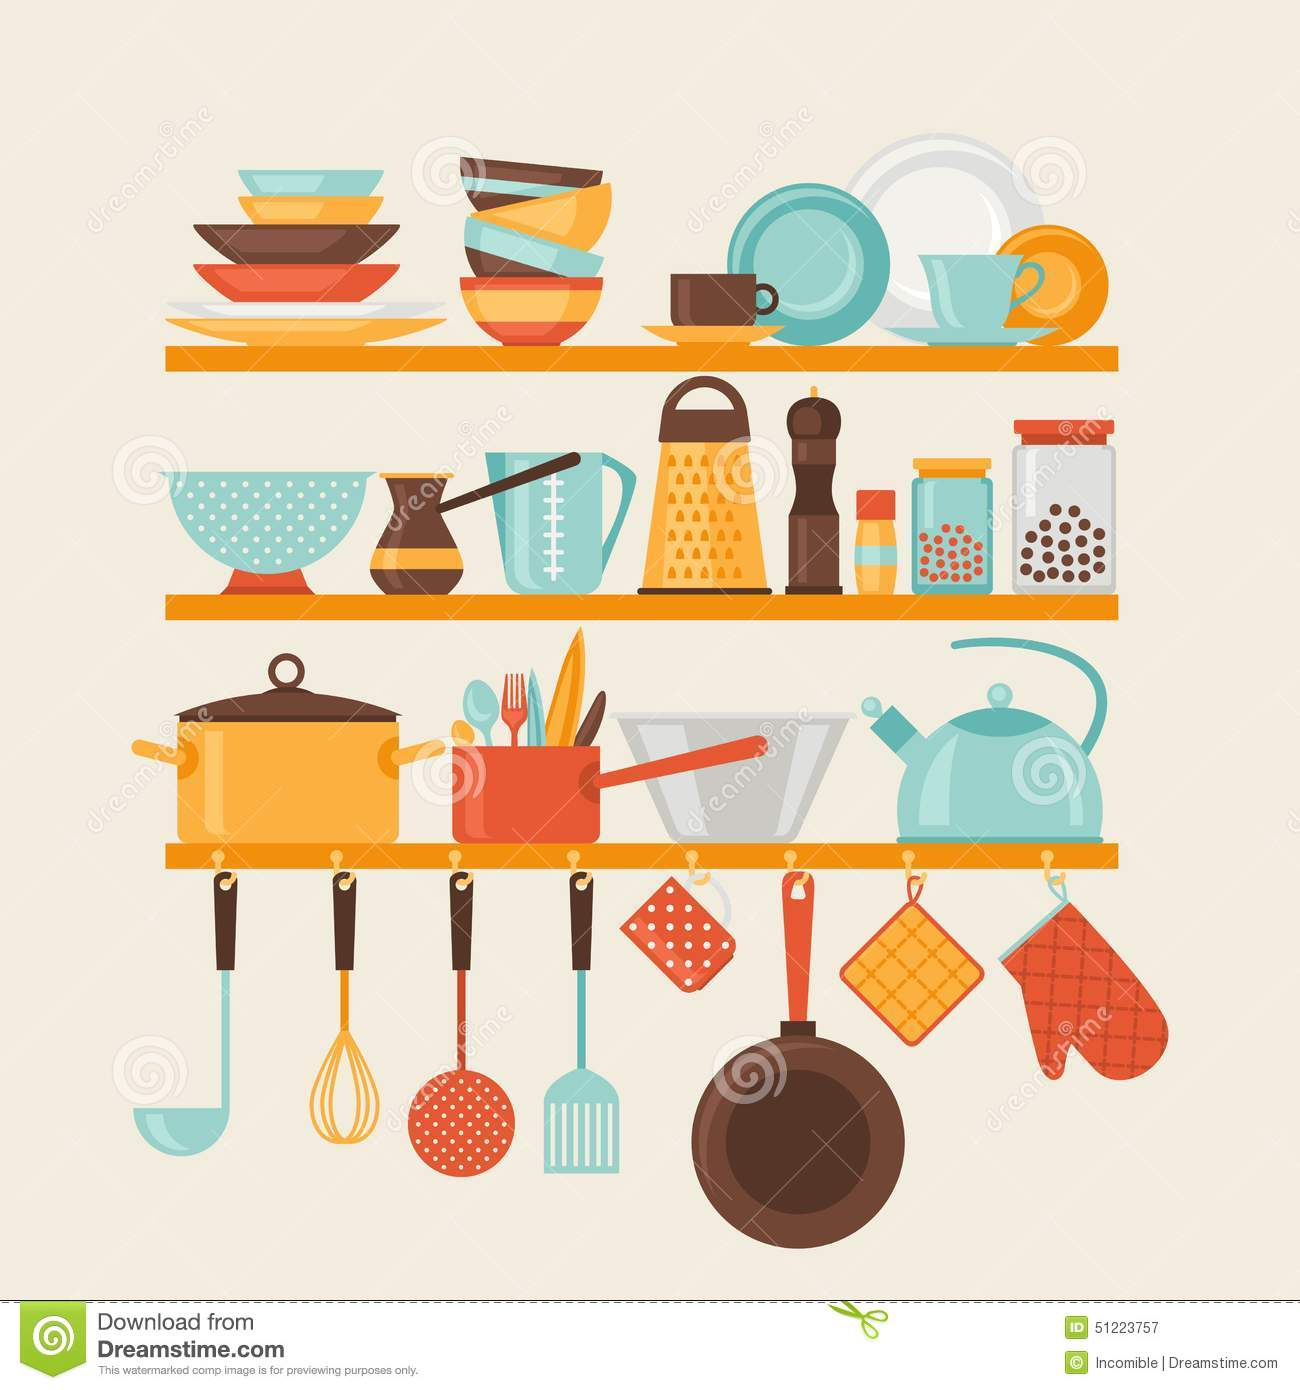 Card with kitchen shelves and cooking utensils in